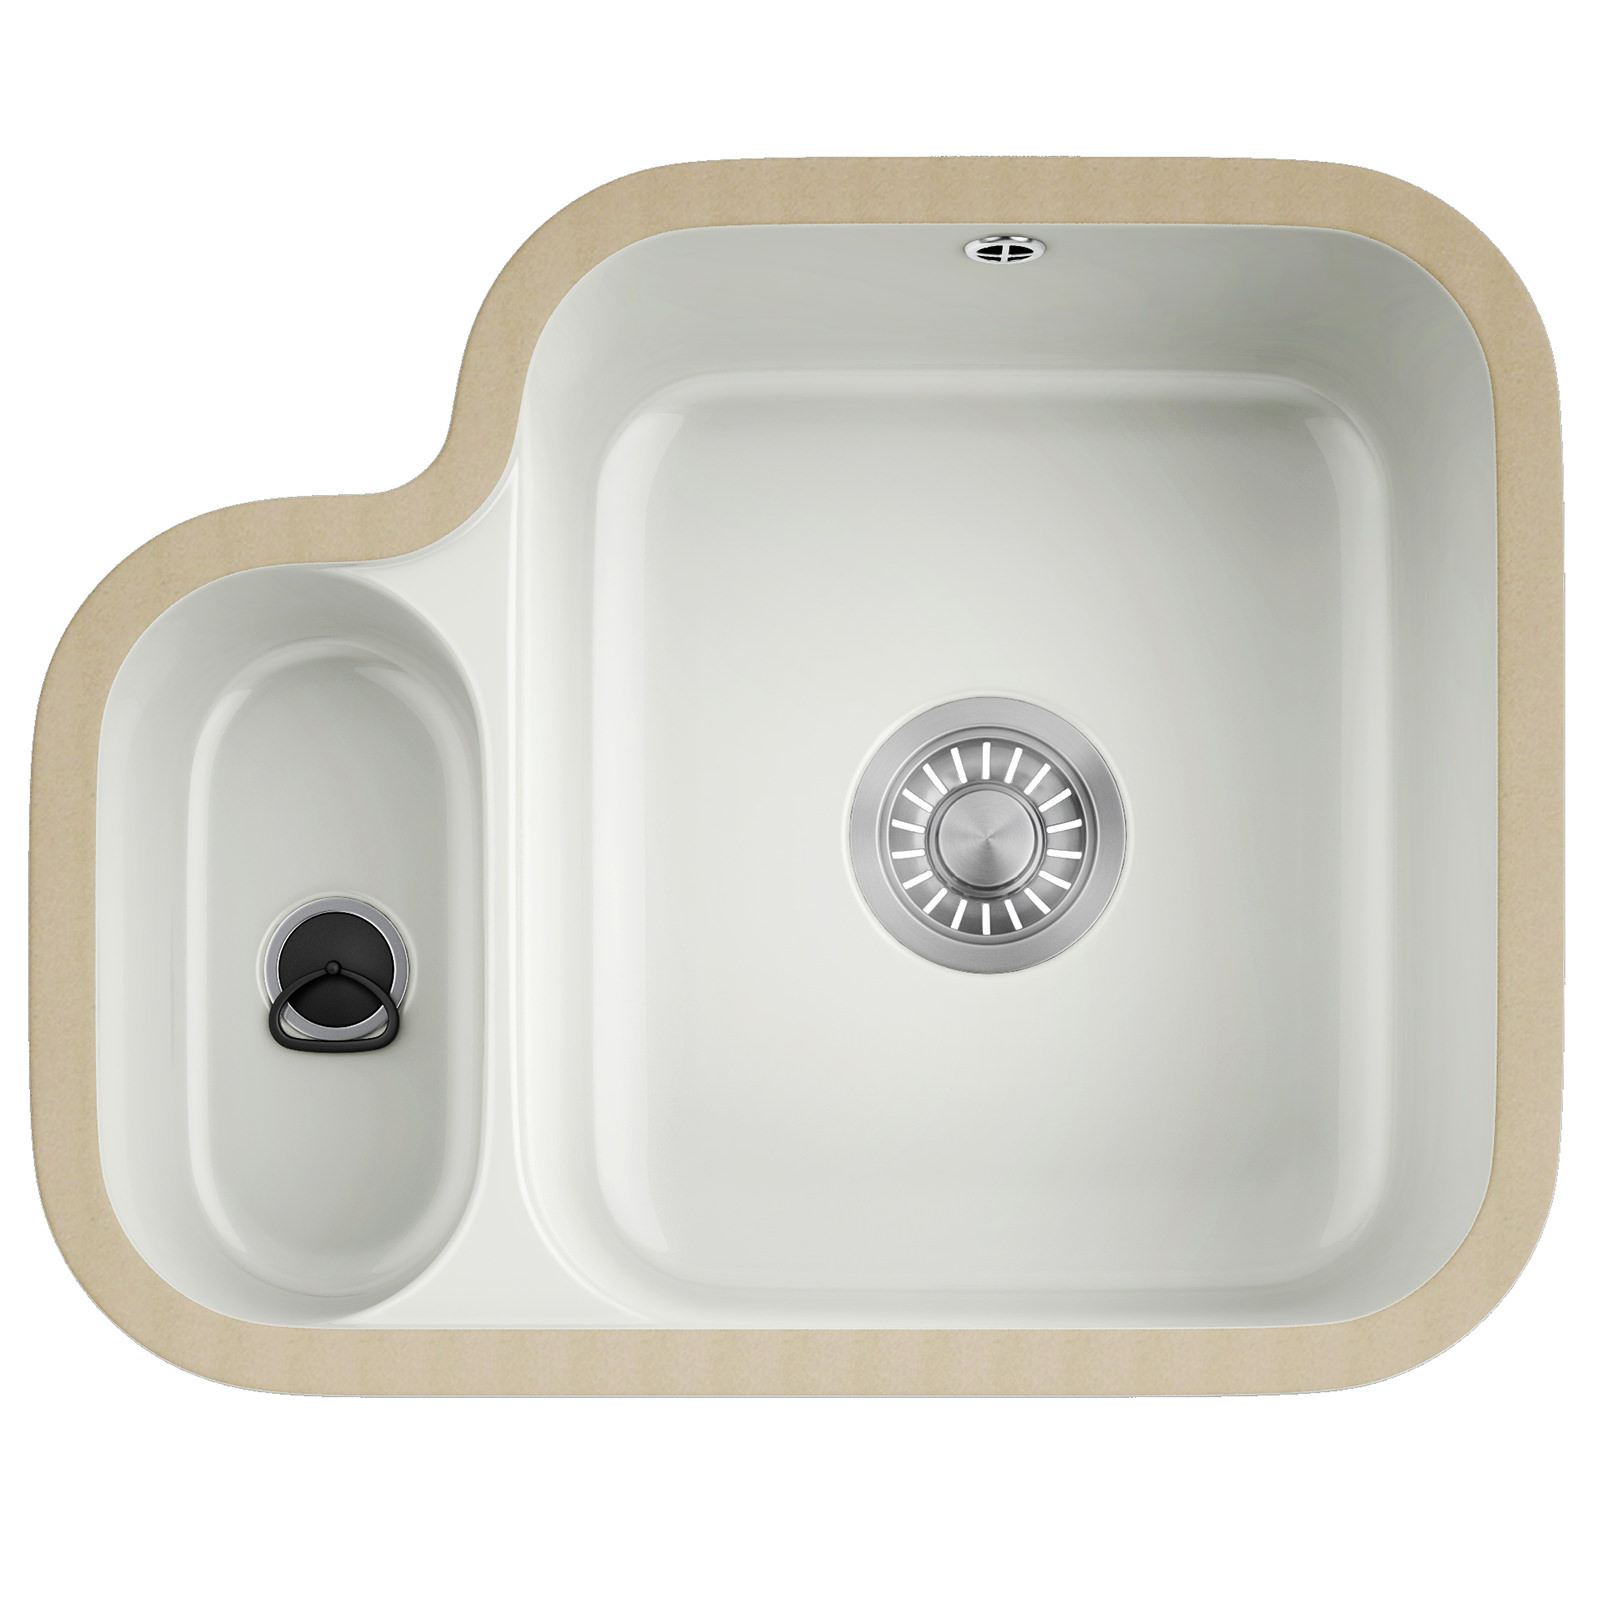 ... Sinks Brand New Franke VBK 160 Ceramic 1.5 Bowl White Undermount Sink